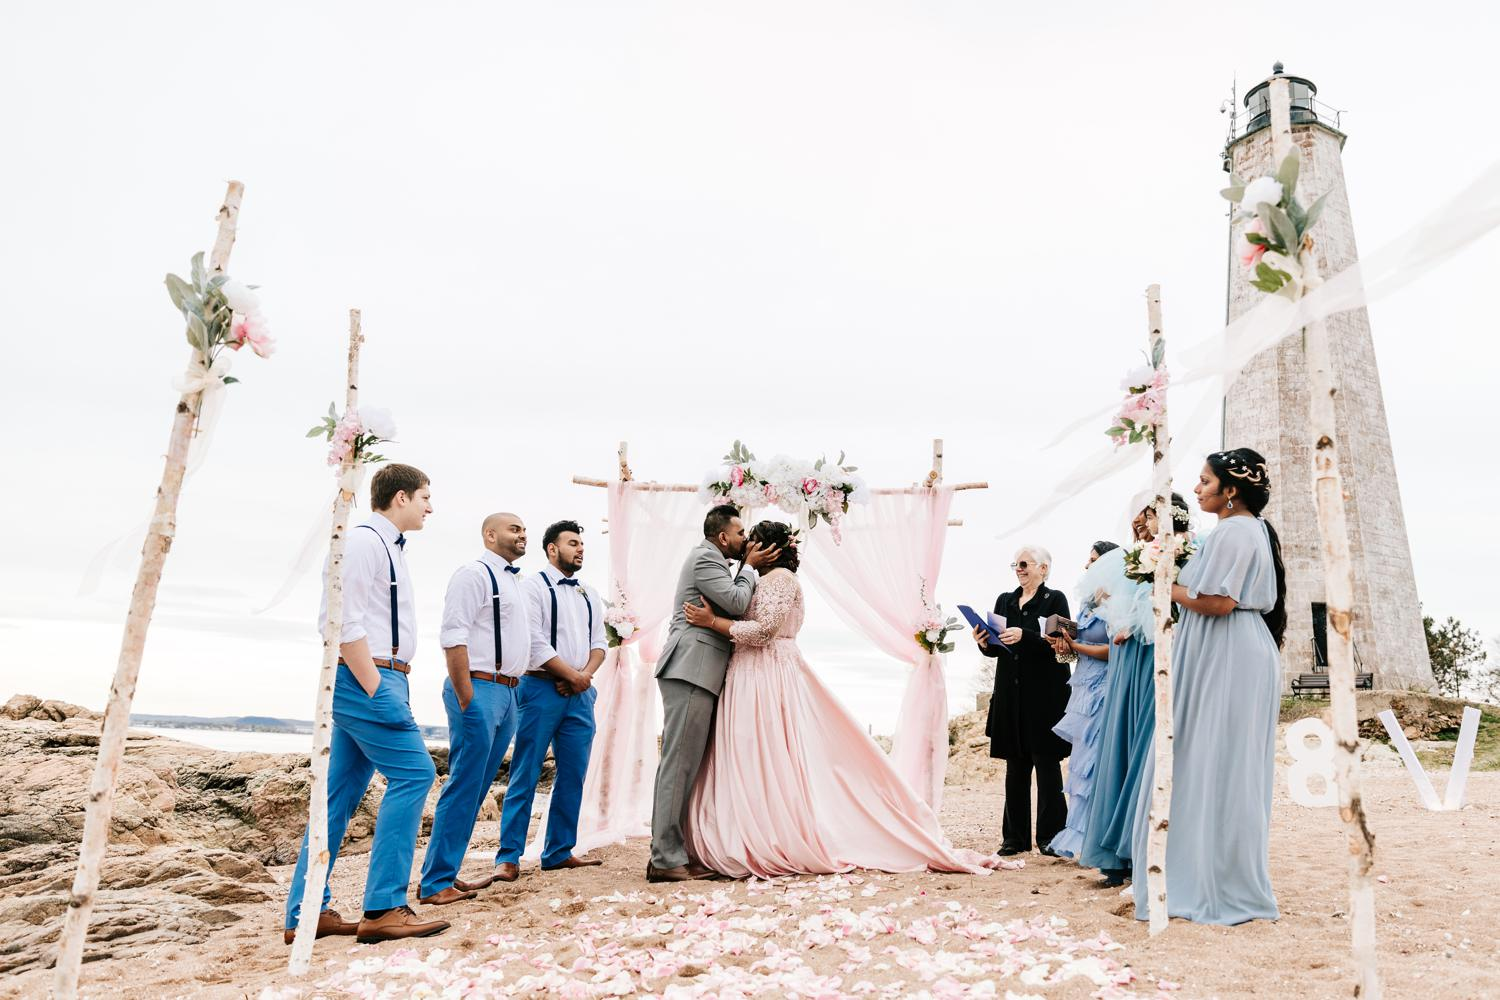 Bride and groom's first kiss on intimate beach wedding ceremony with birch tree and rose decorations